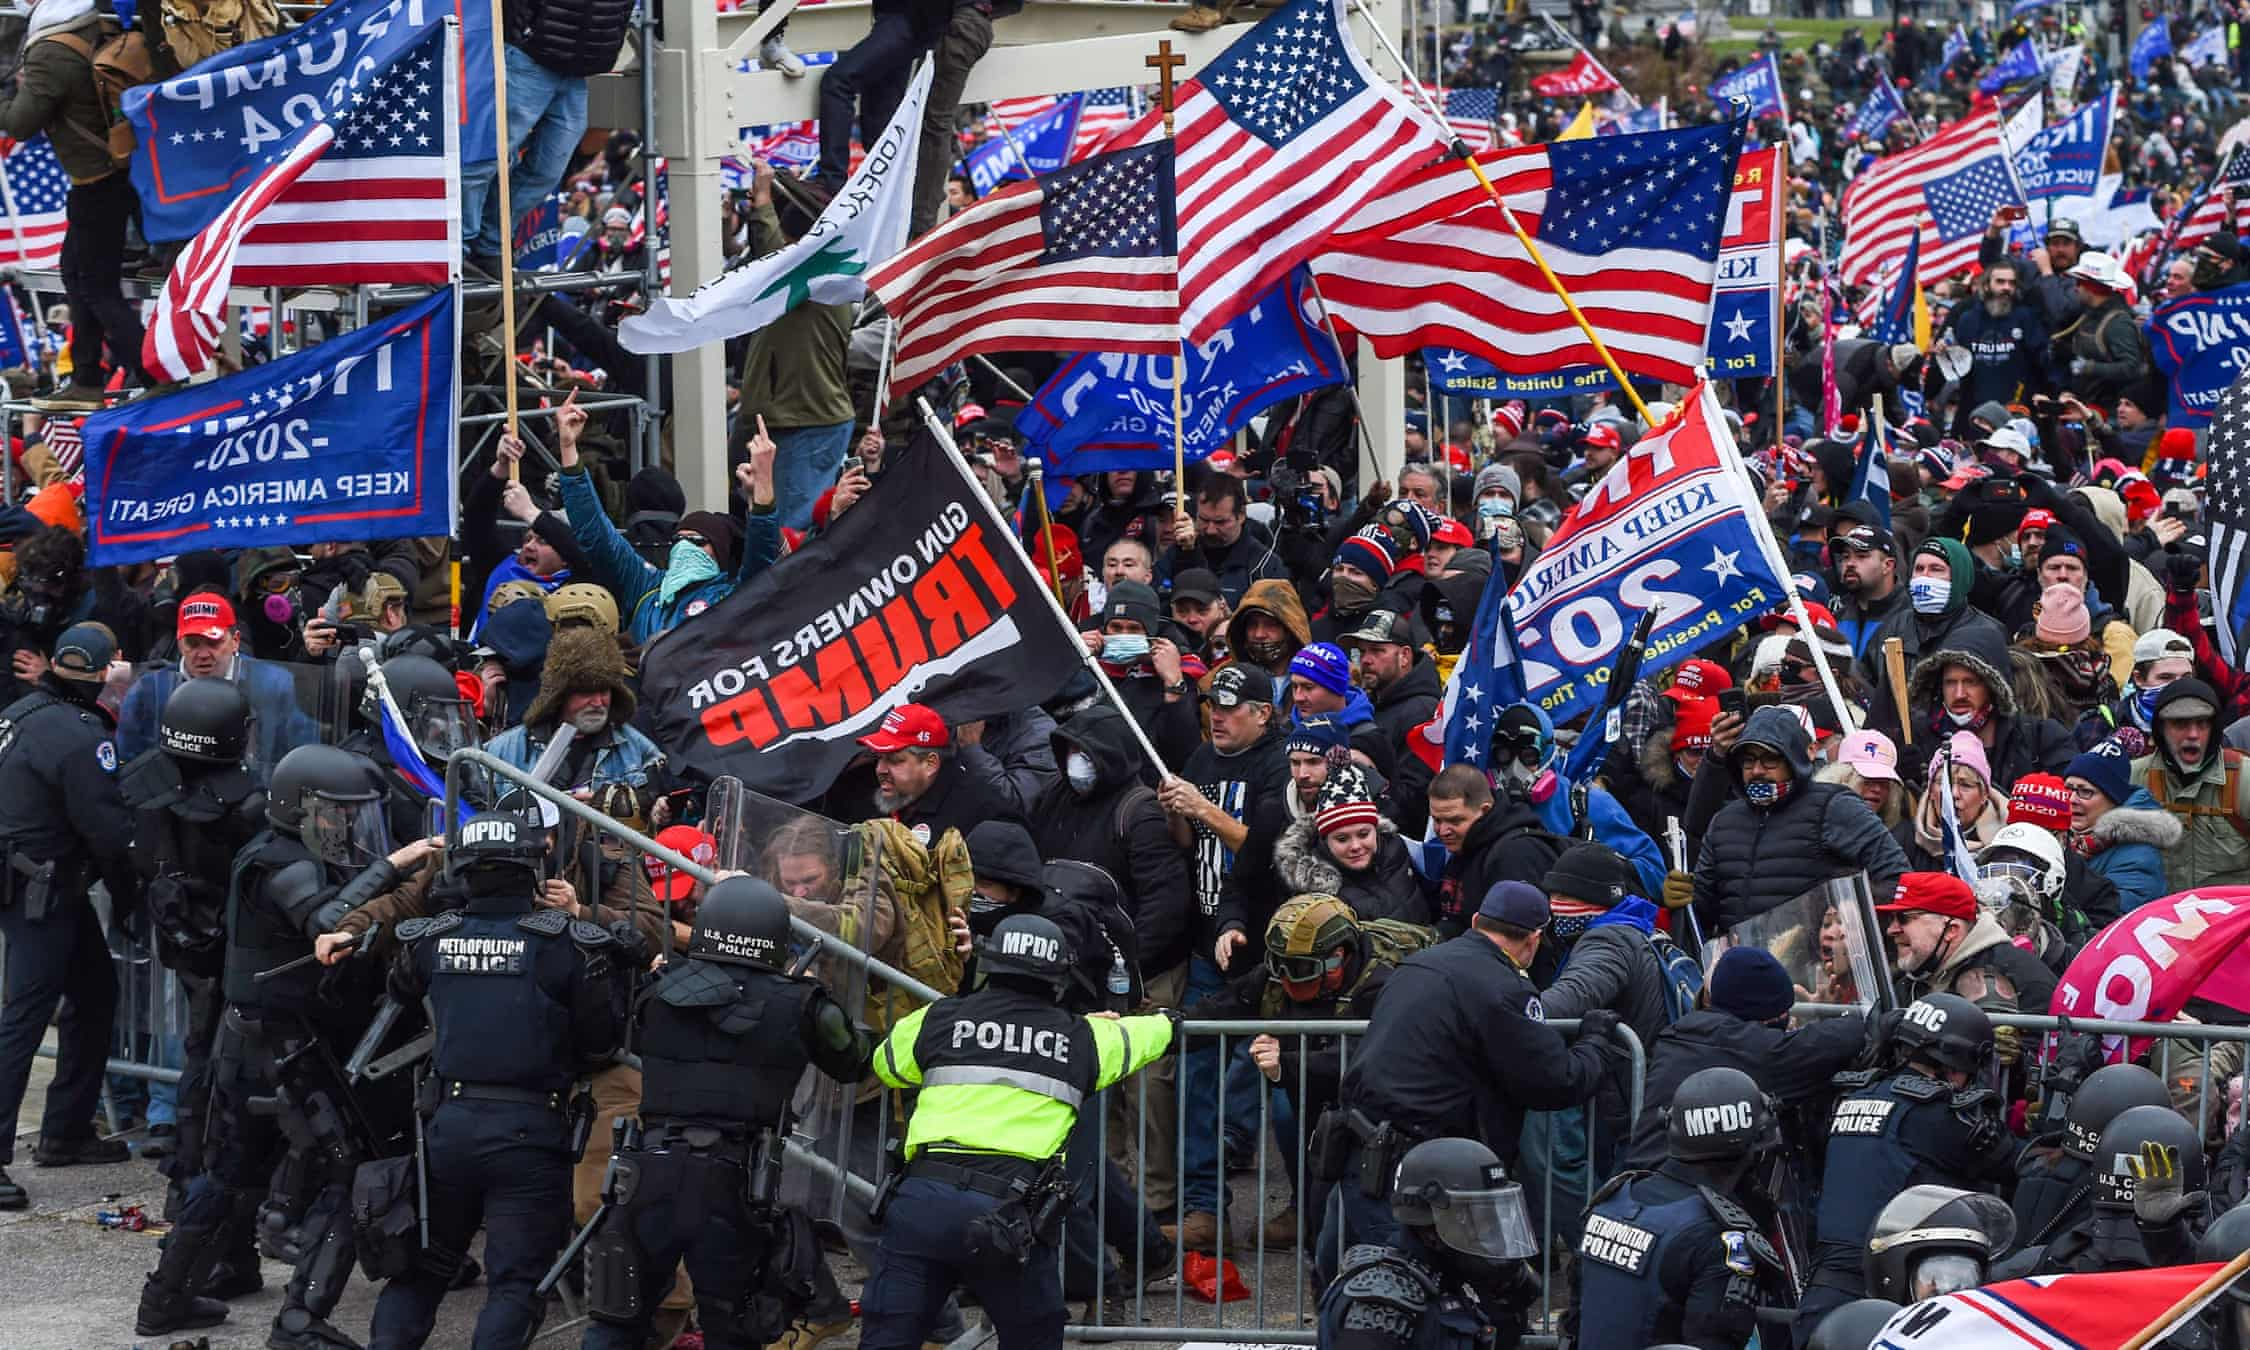 Trump supporters clash with police and security forces as they storm the US Capitol in Washington DC on 6 January 2021. Photograph: Roberto Schmidt/AFP/Getty Images